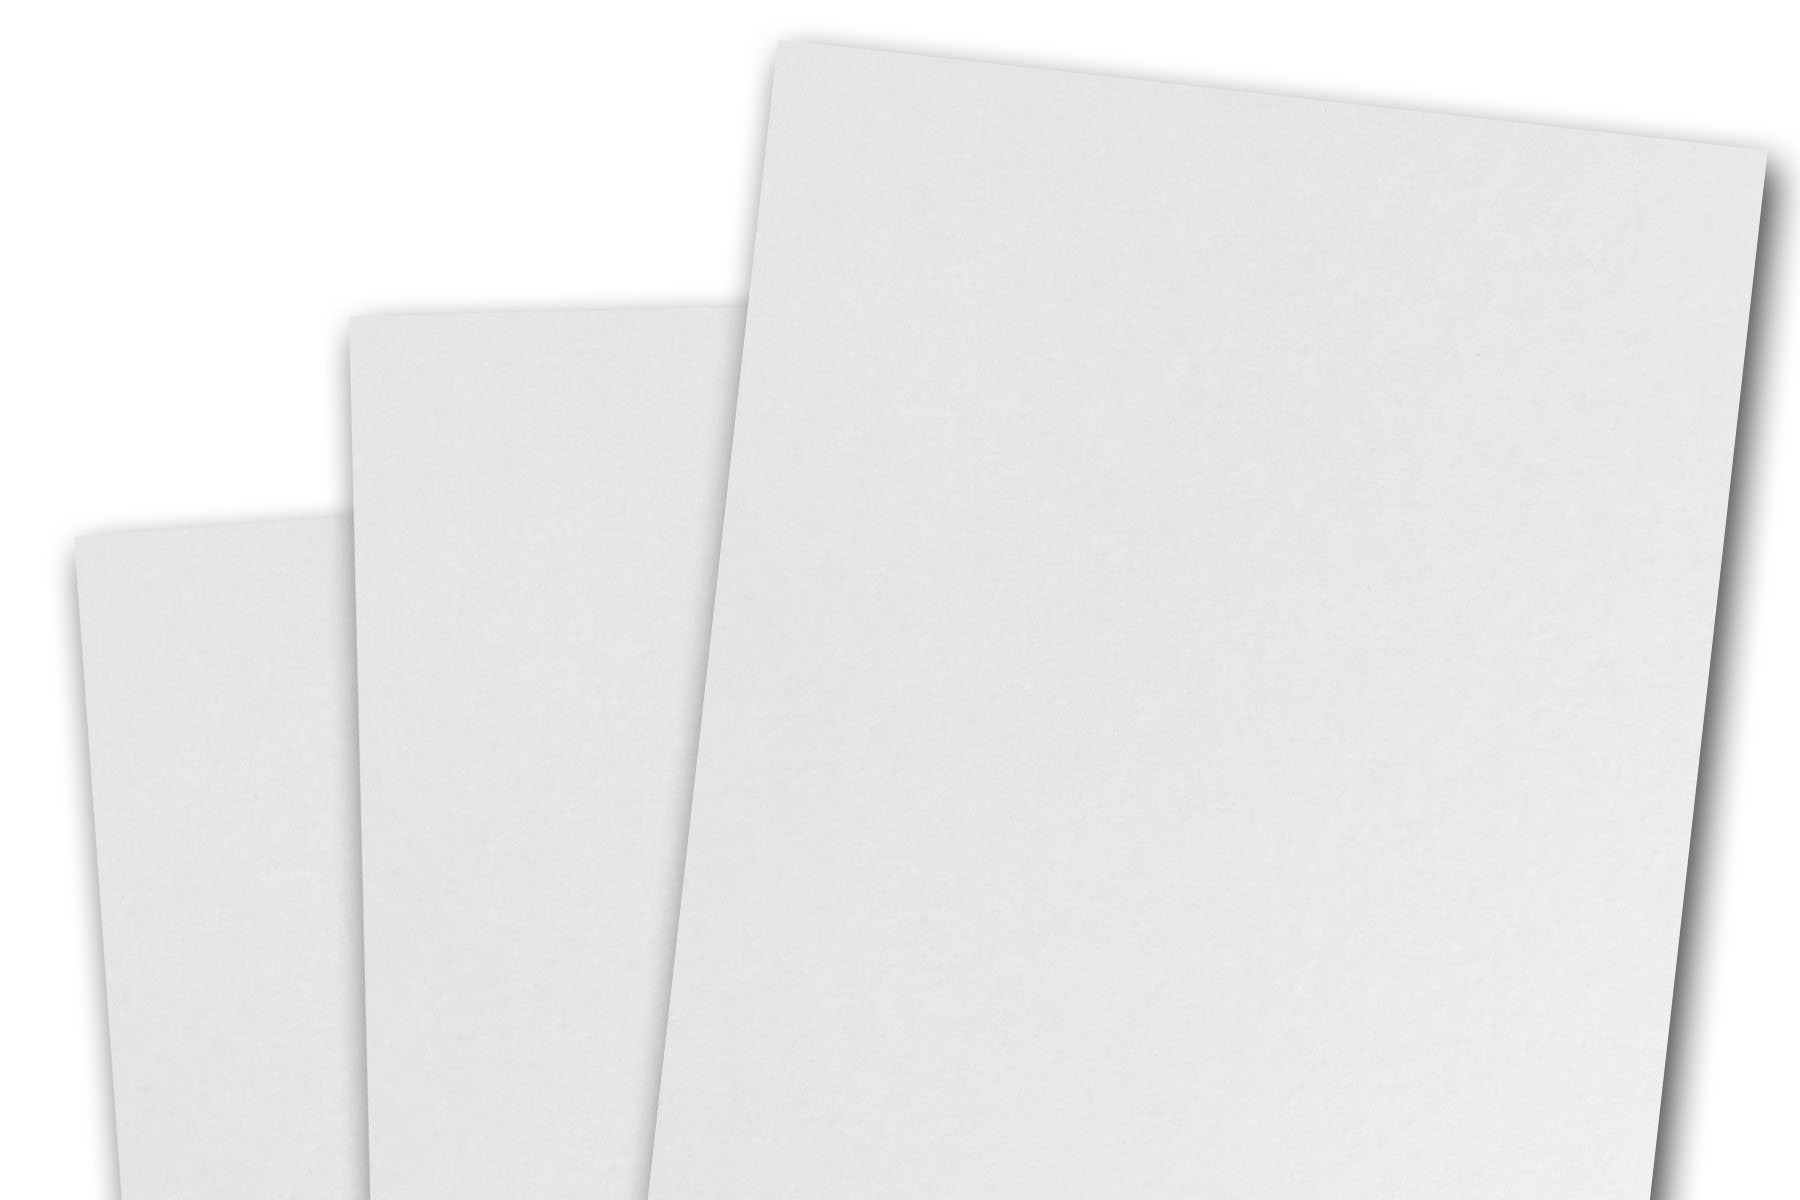 Blank 80# A7 Basic 5x7 Card Stock (250 Pack, White) by CutCardStock